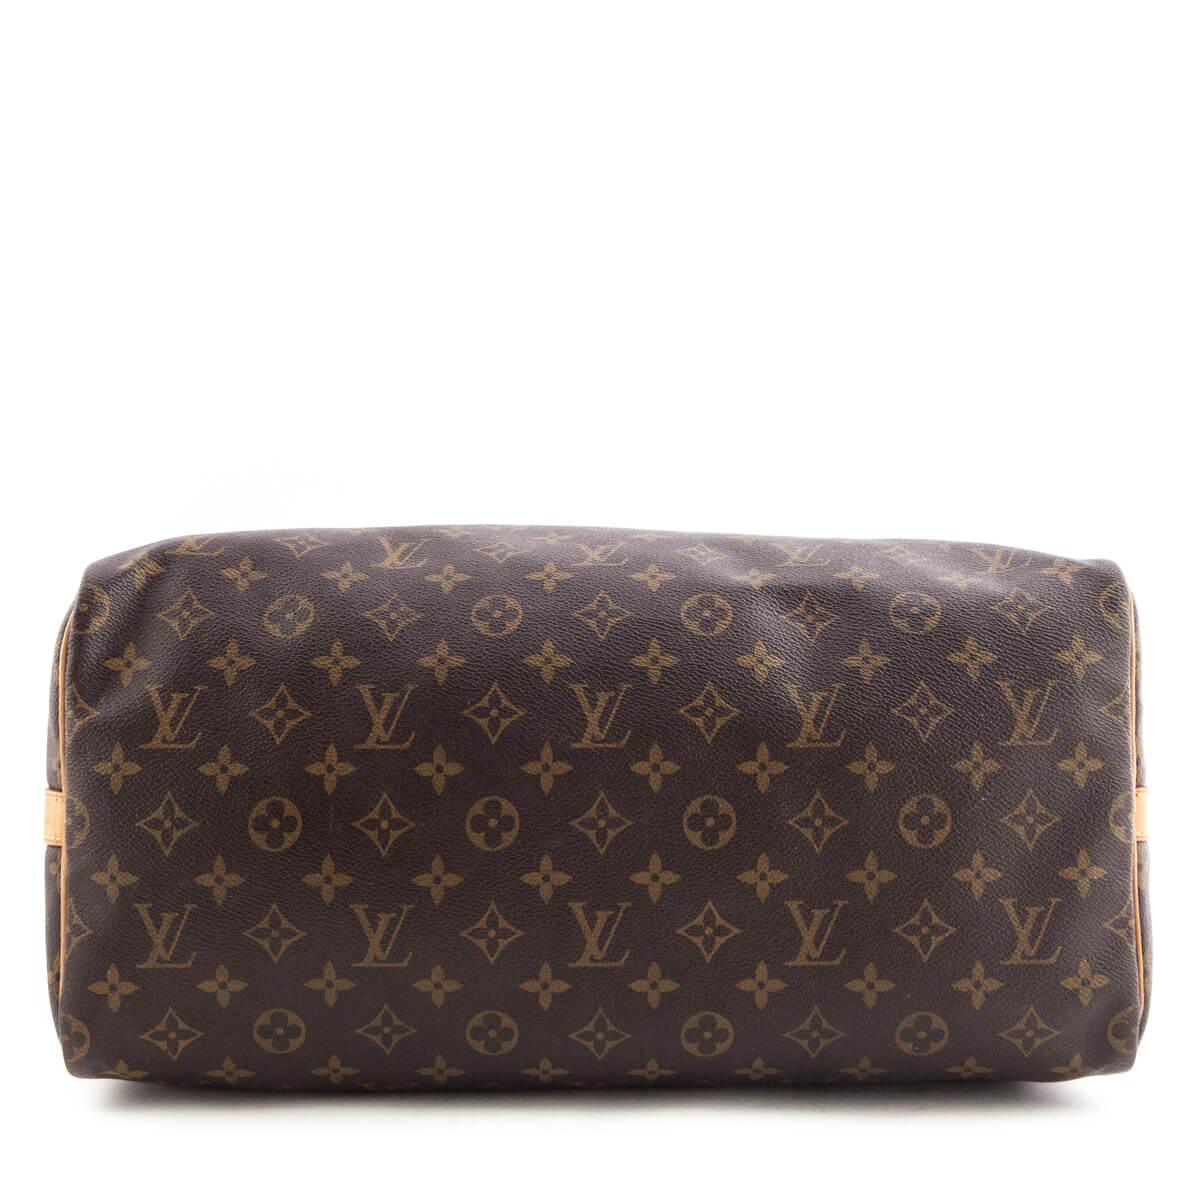 c1c5e0f171c7 ... Louis Vuitton Monogram Speedy 40 Bandouliere - LOVE that BAG - Preowned  Authentic Designer Handbags ...